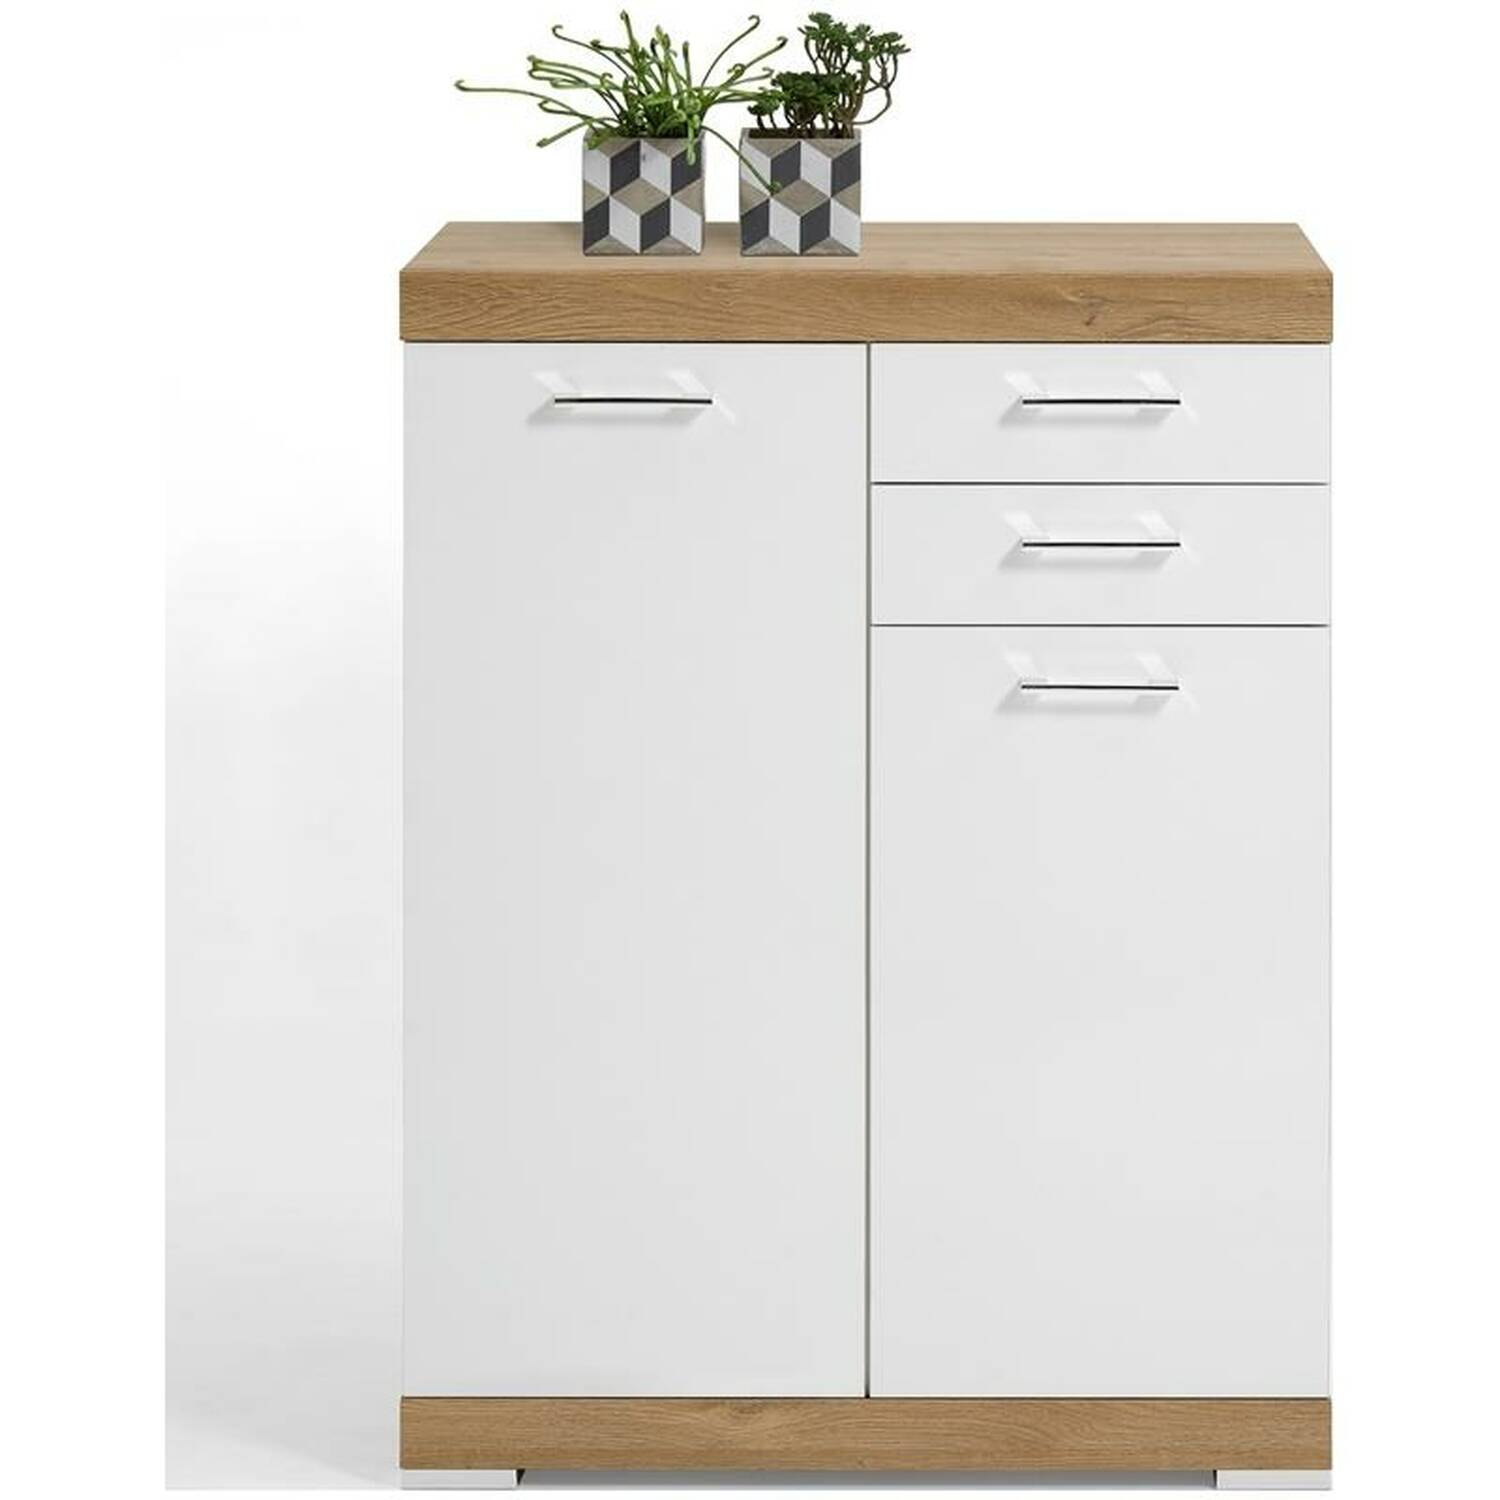 kommode highboard mit 2 t ren und 2 schubk sten alteiche nb wei edelglanz xl tiefe york 10 b. Black Bedroom Furniture Sets. Home Design Ideas